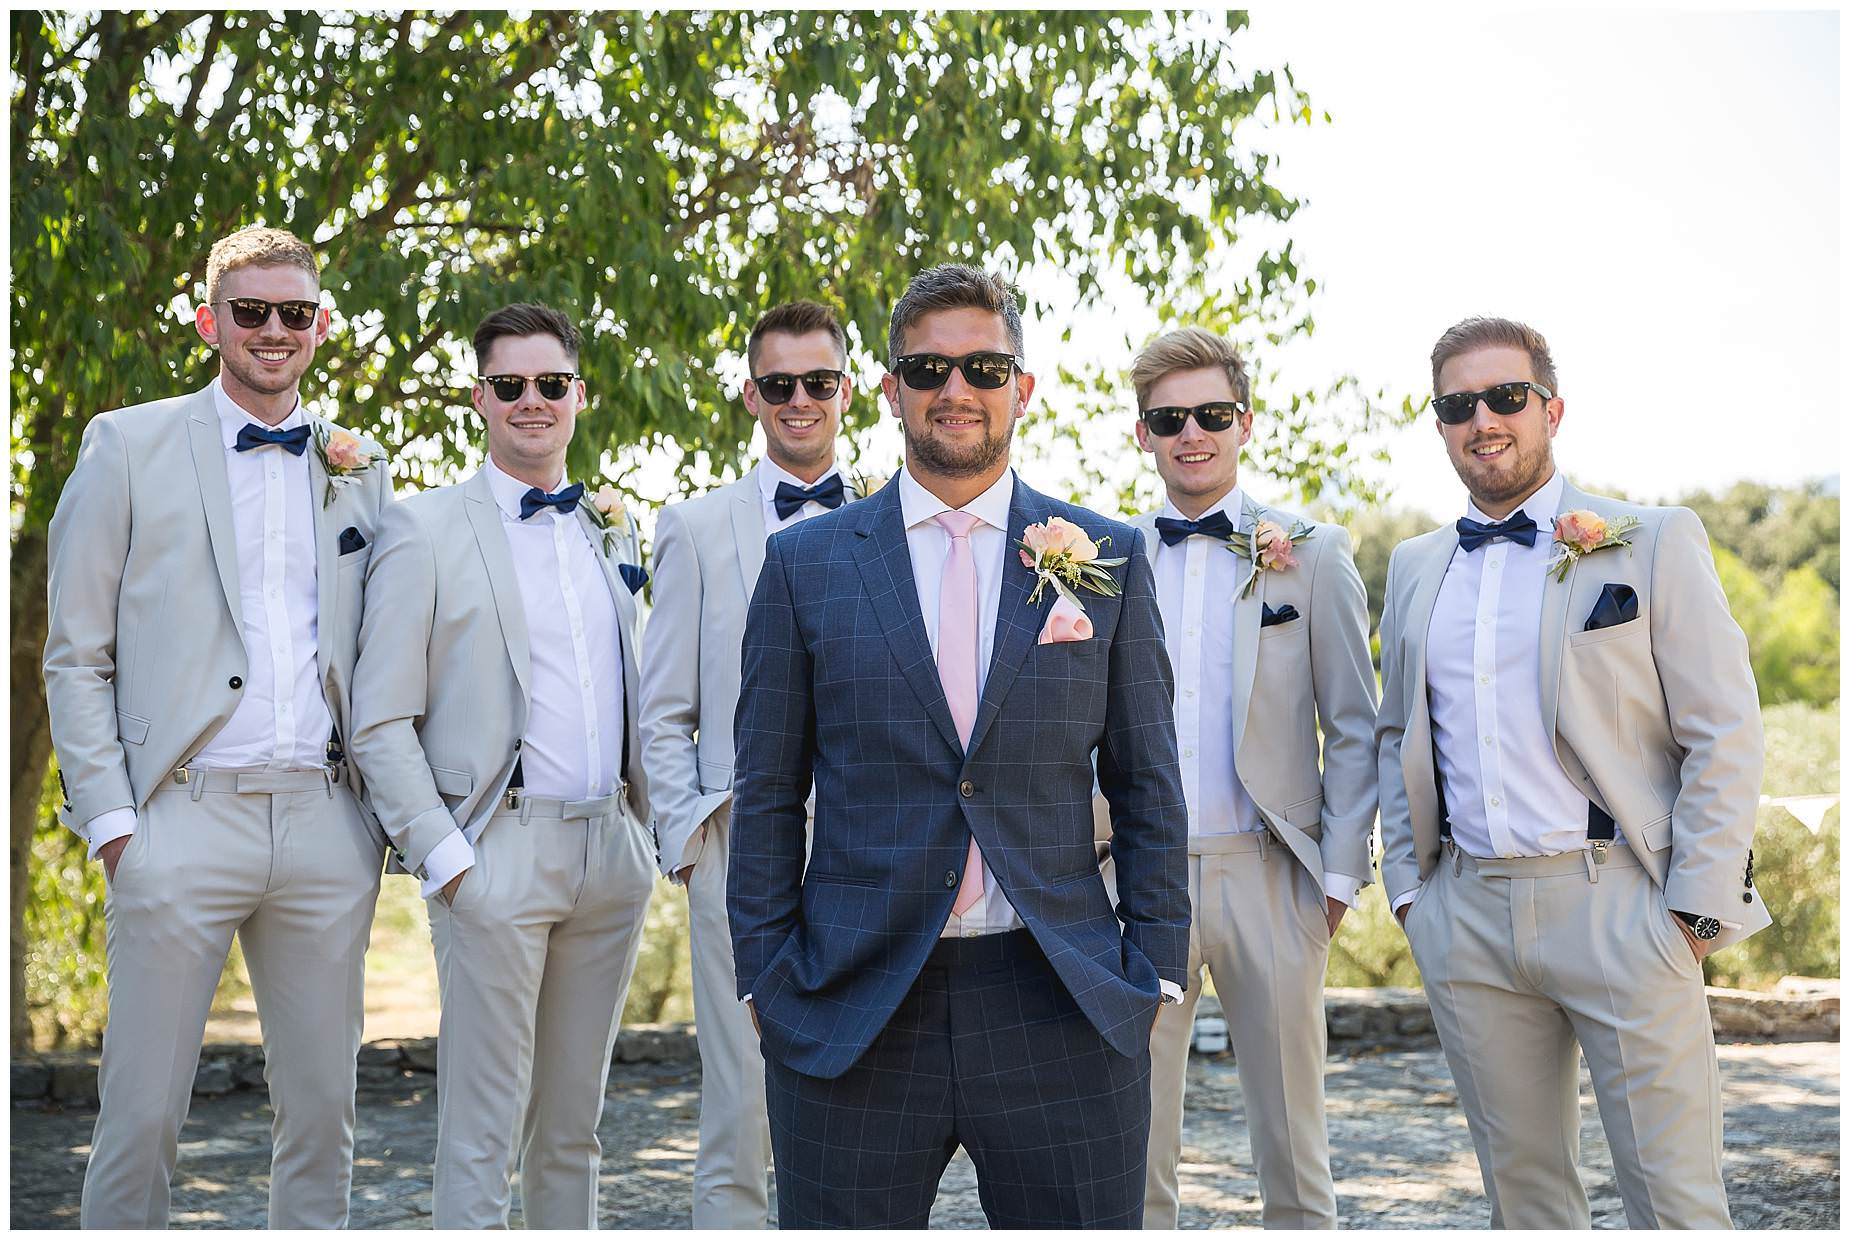 Boys ready for the wedding. Tan suits with bow ties